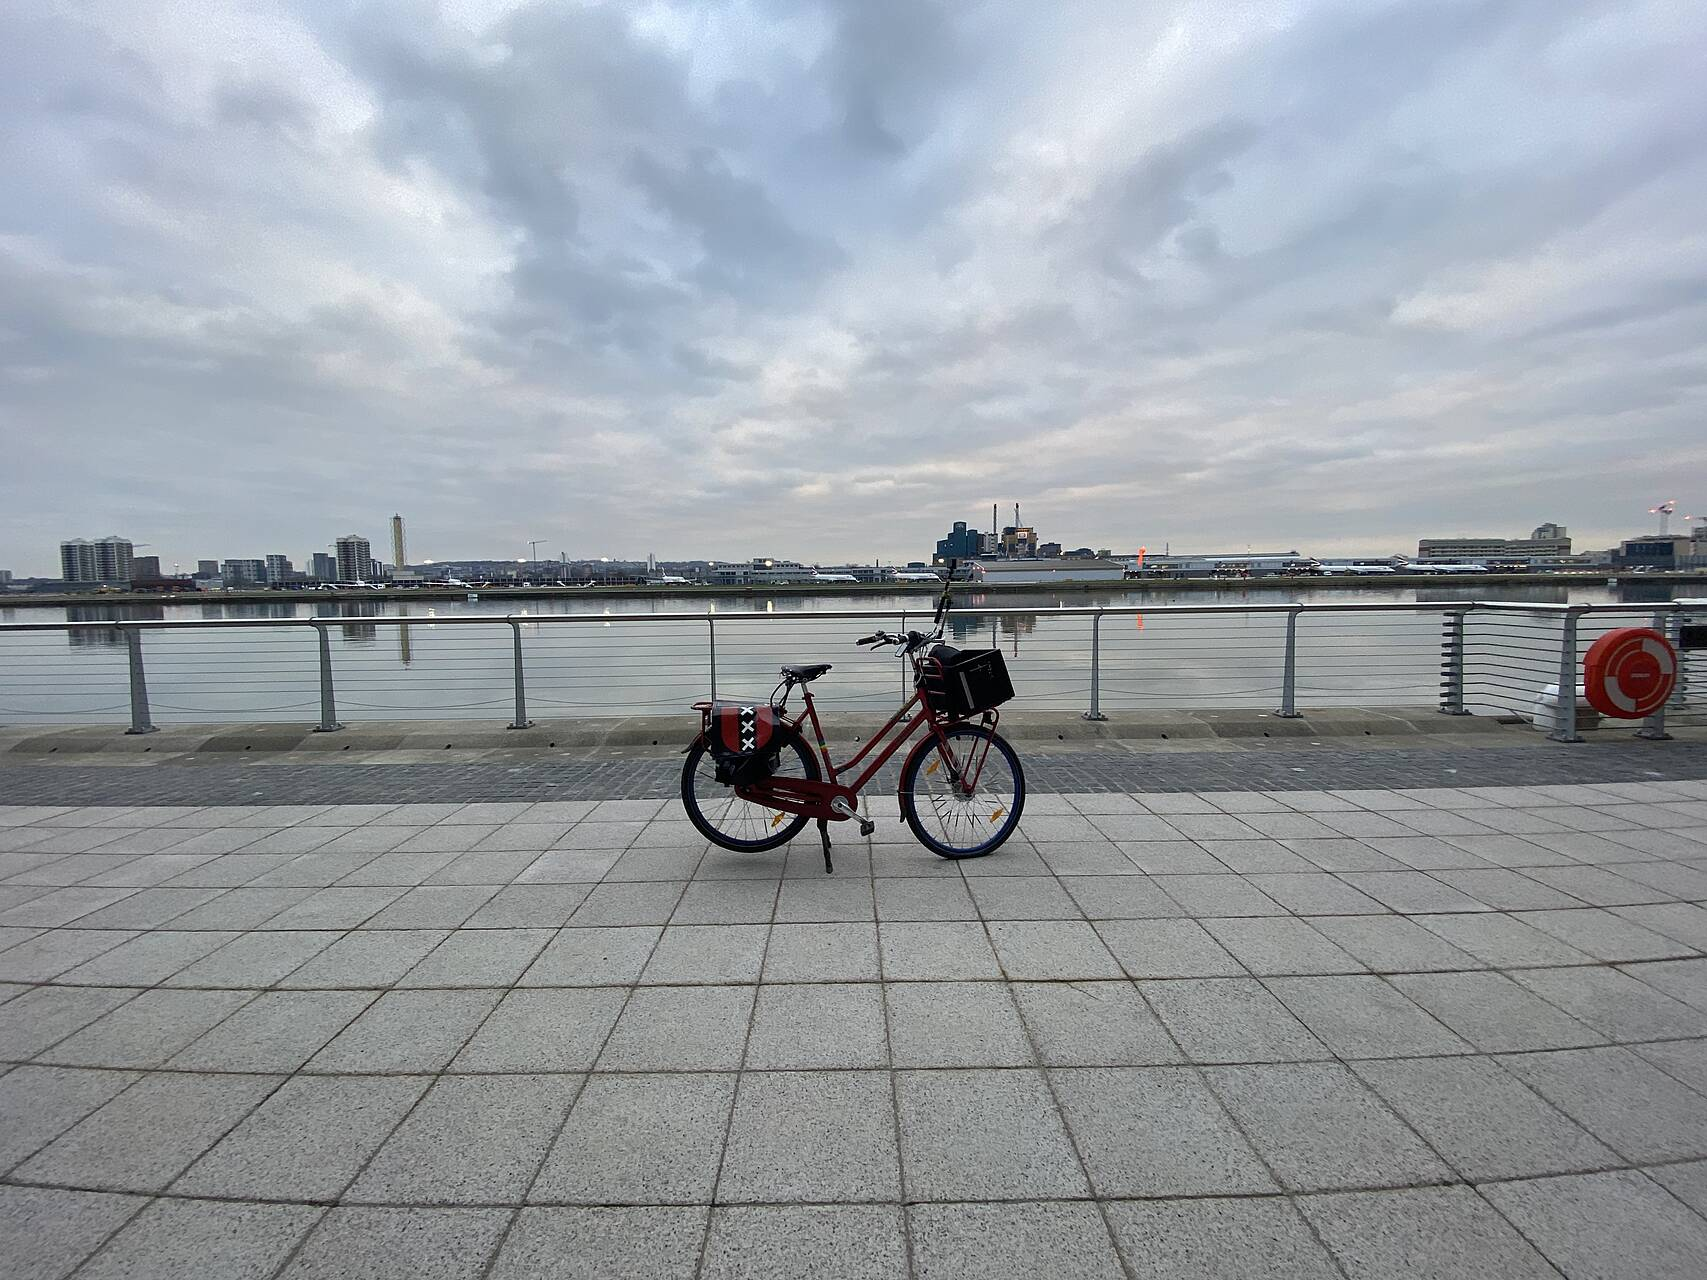 Red Dutch bicycle on its kickstand on a paved area in front of a dock with London City Airport in the background across the dock.jpeg